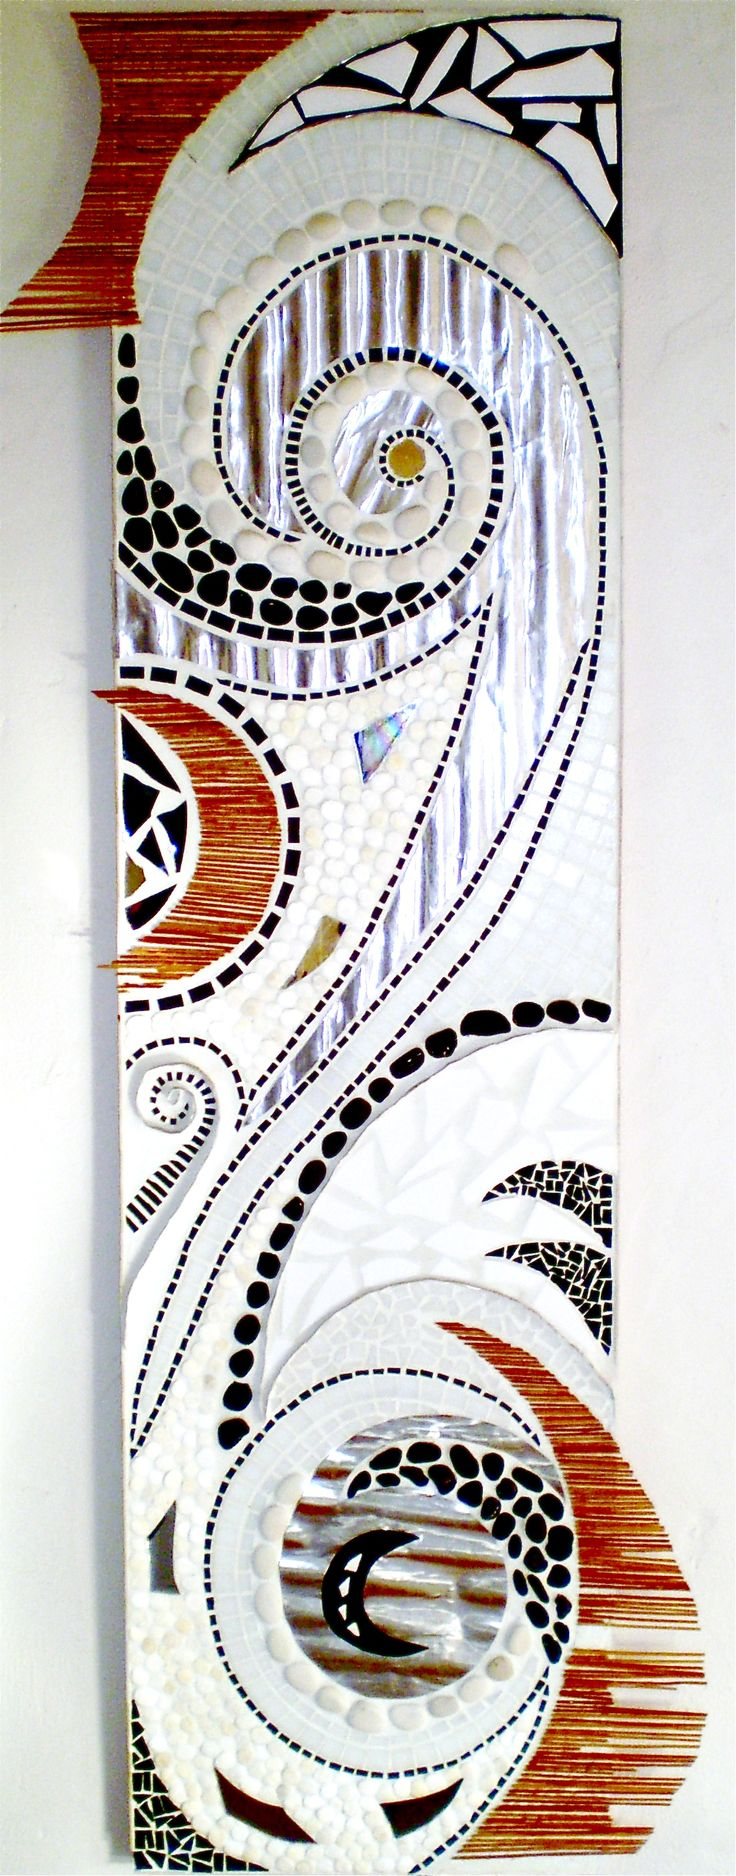 Ebb and Flow, 2009, stone, shell, aluminium, wood and tile 56x200 cm  SOLD